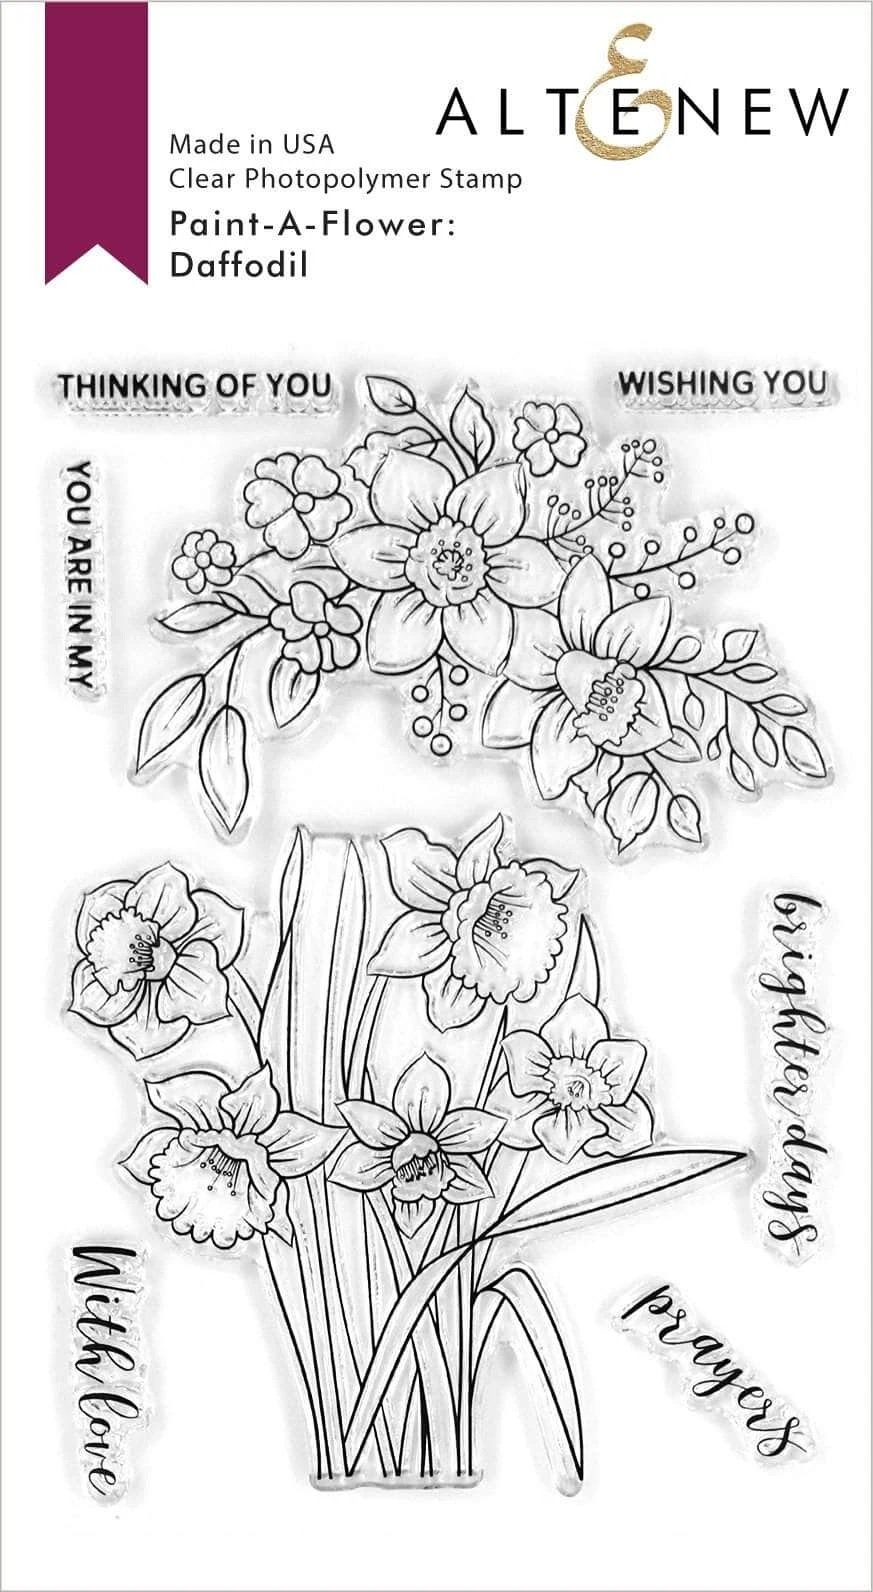 Paint-A-Flower: Daffodil Outline Stamp Set